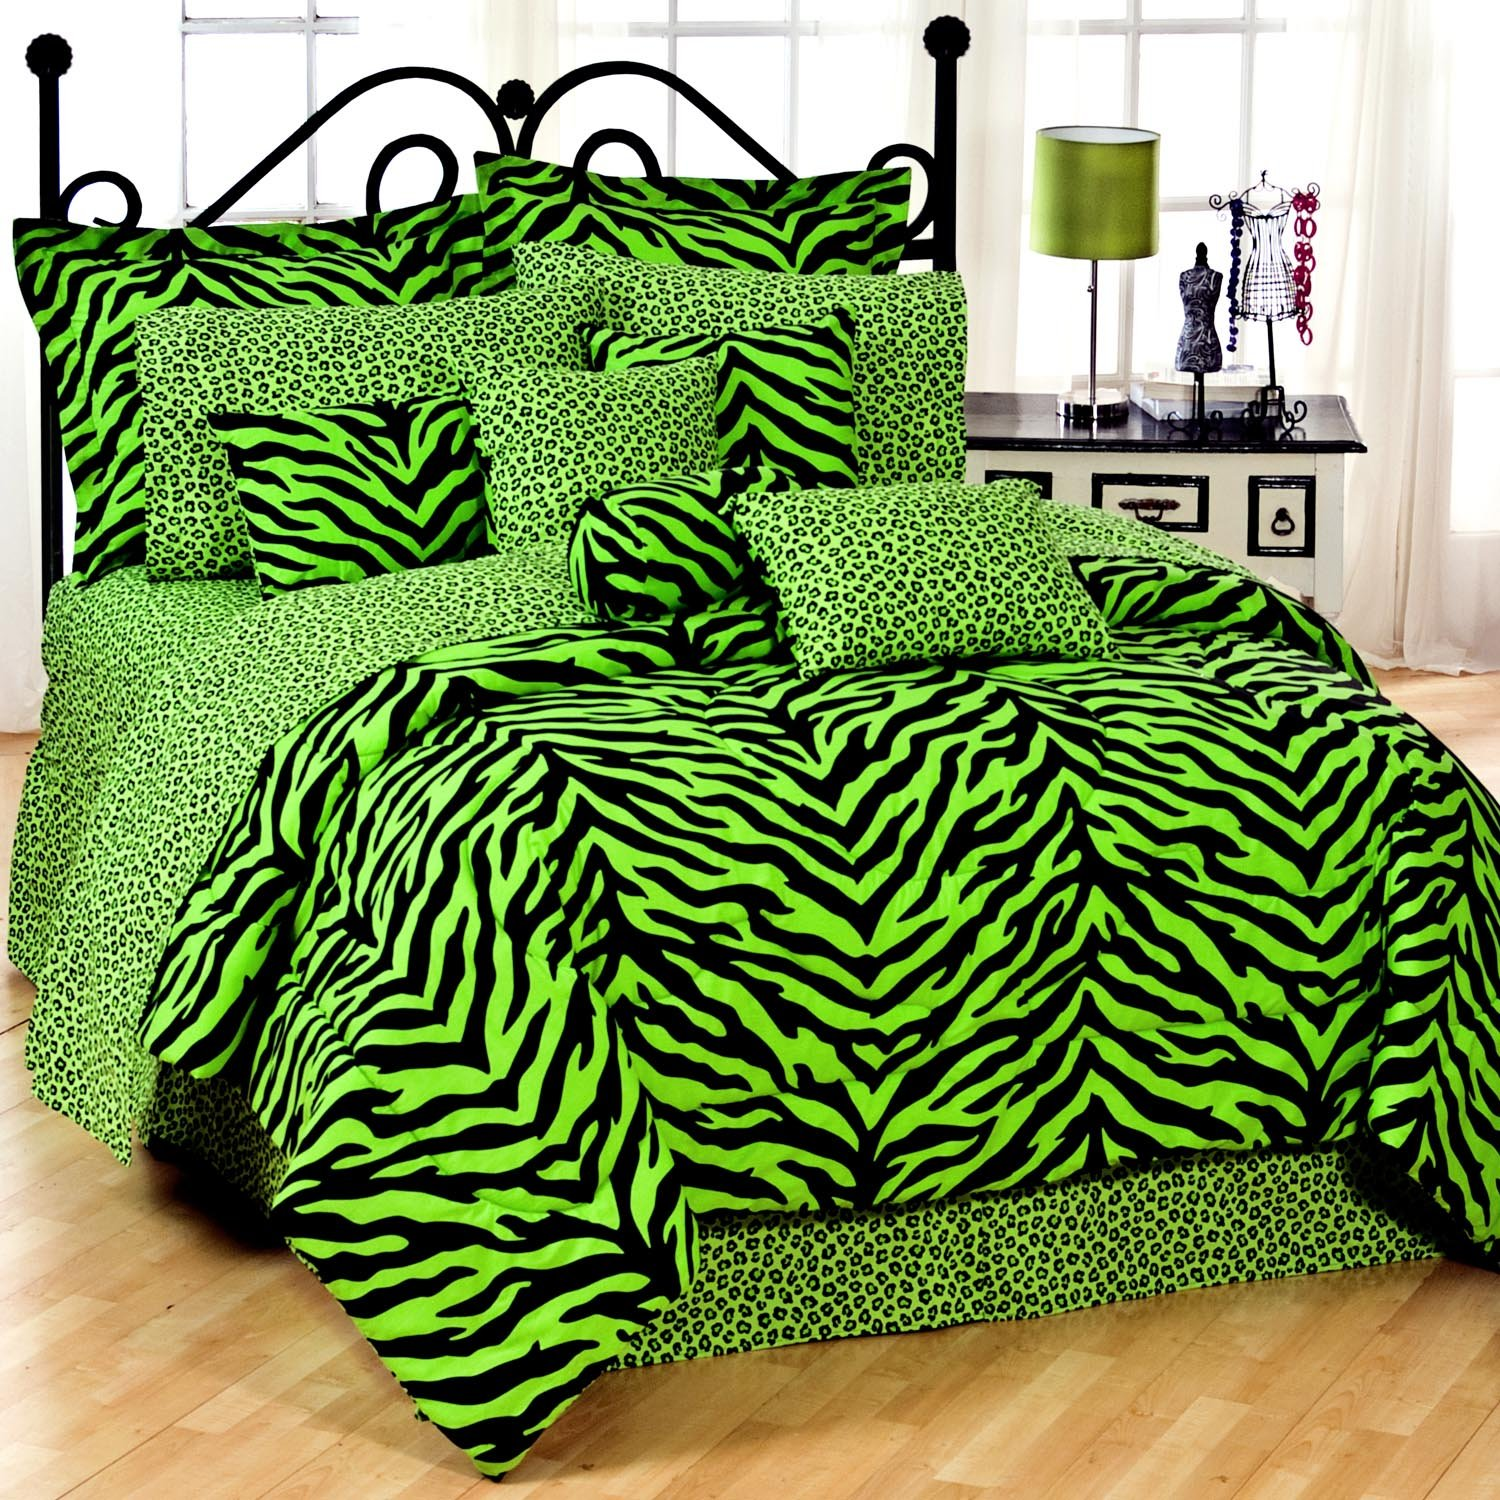 Lime green zebra bedding sets and sundries